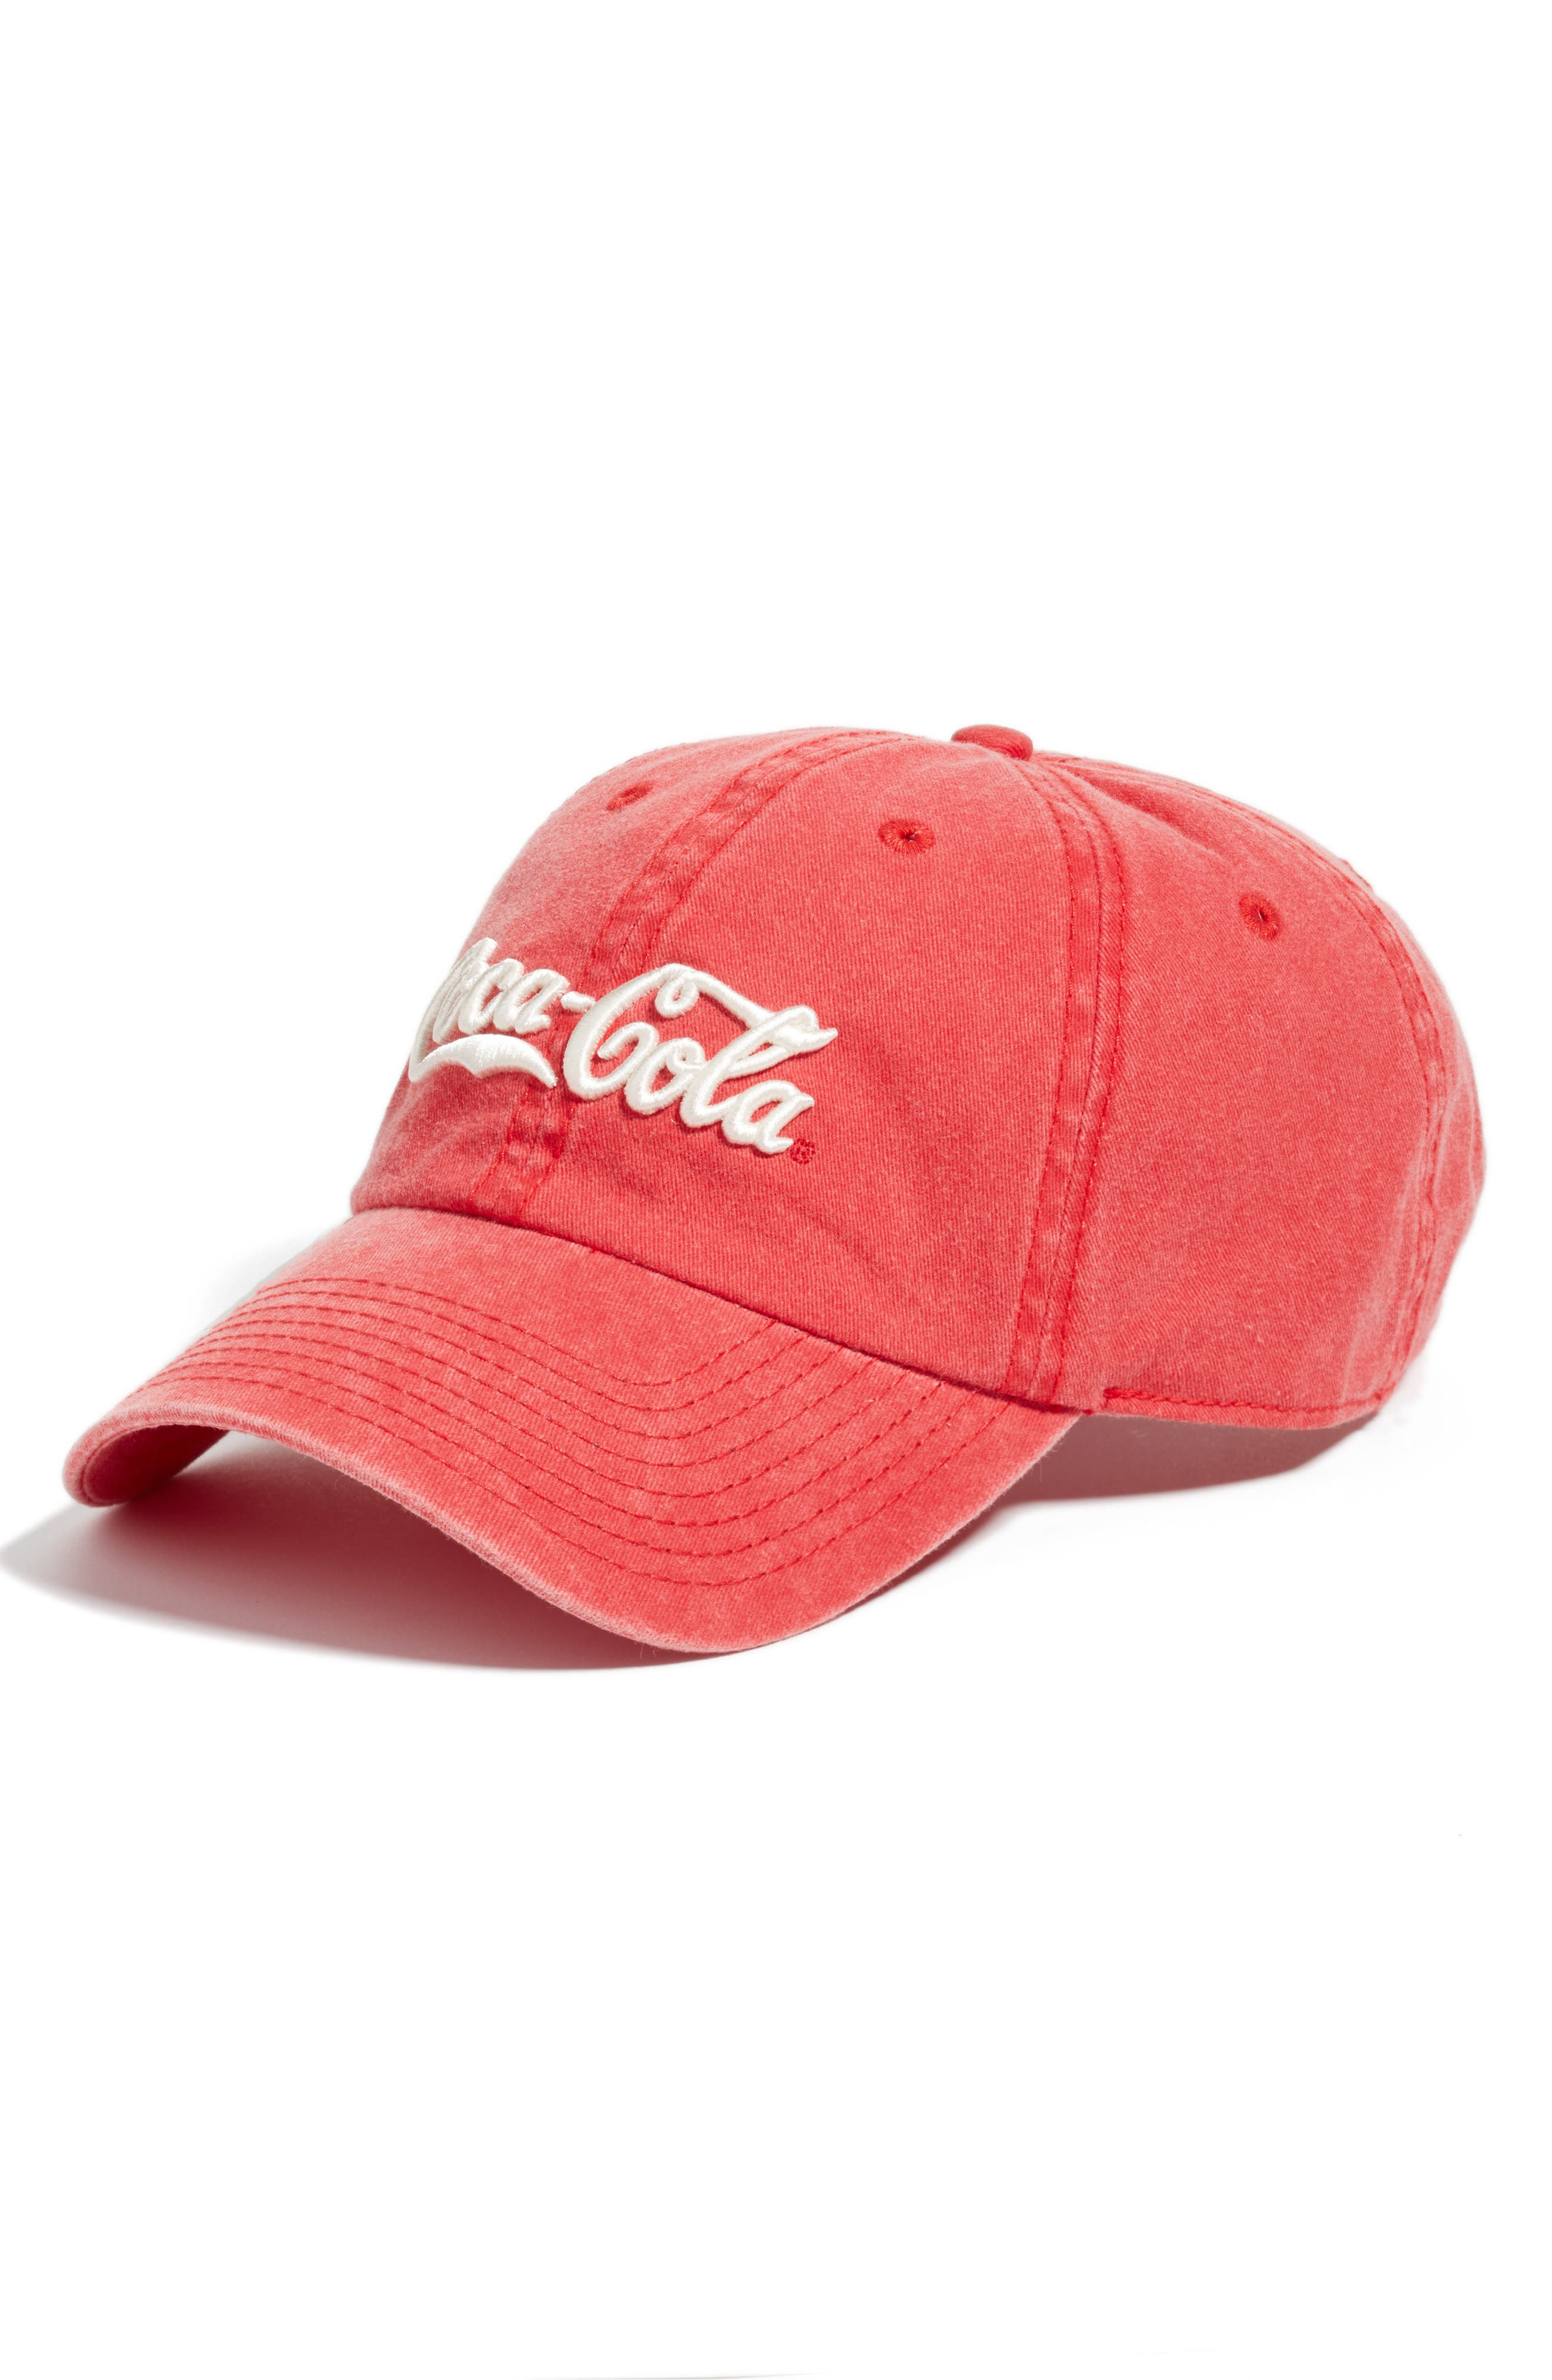 New Raglan - Coca-Cola Baseball Cap,                             Main thumbnail 2, color,